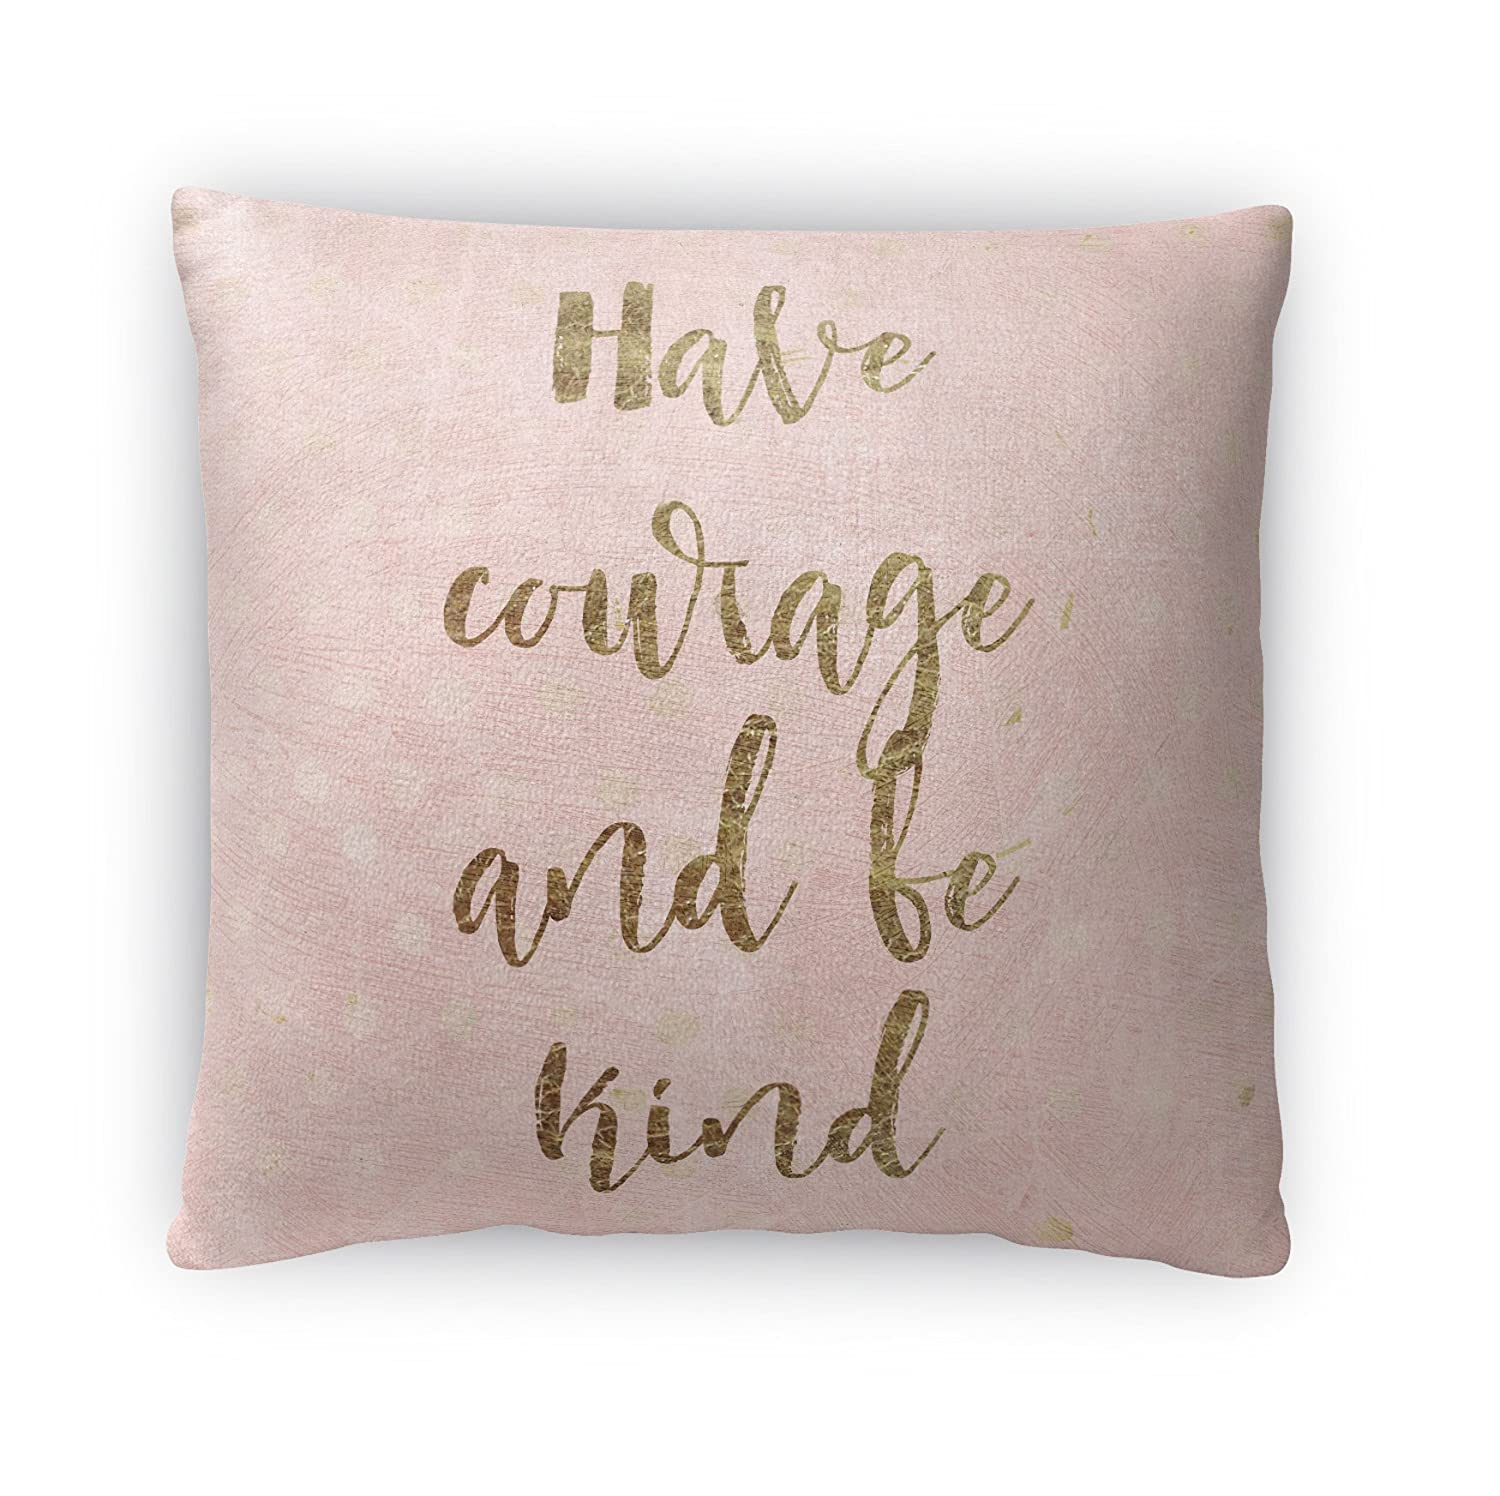 ArtVerse Katelyn Smith 26 x 26 Poly Twill Double Sided Print with Concealed Zipper /& Insert New Jersey Love Pillow